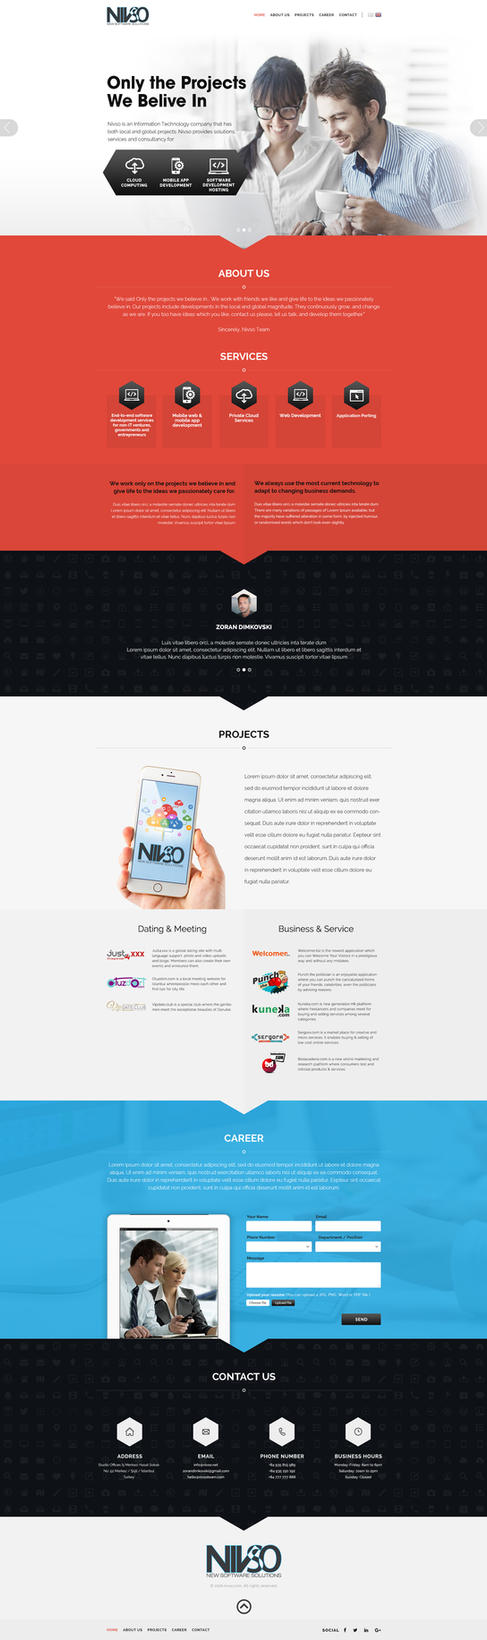 Nivso Homepage by zokac1